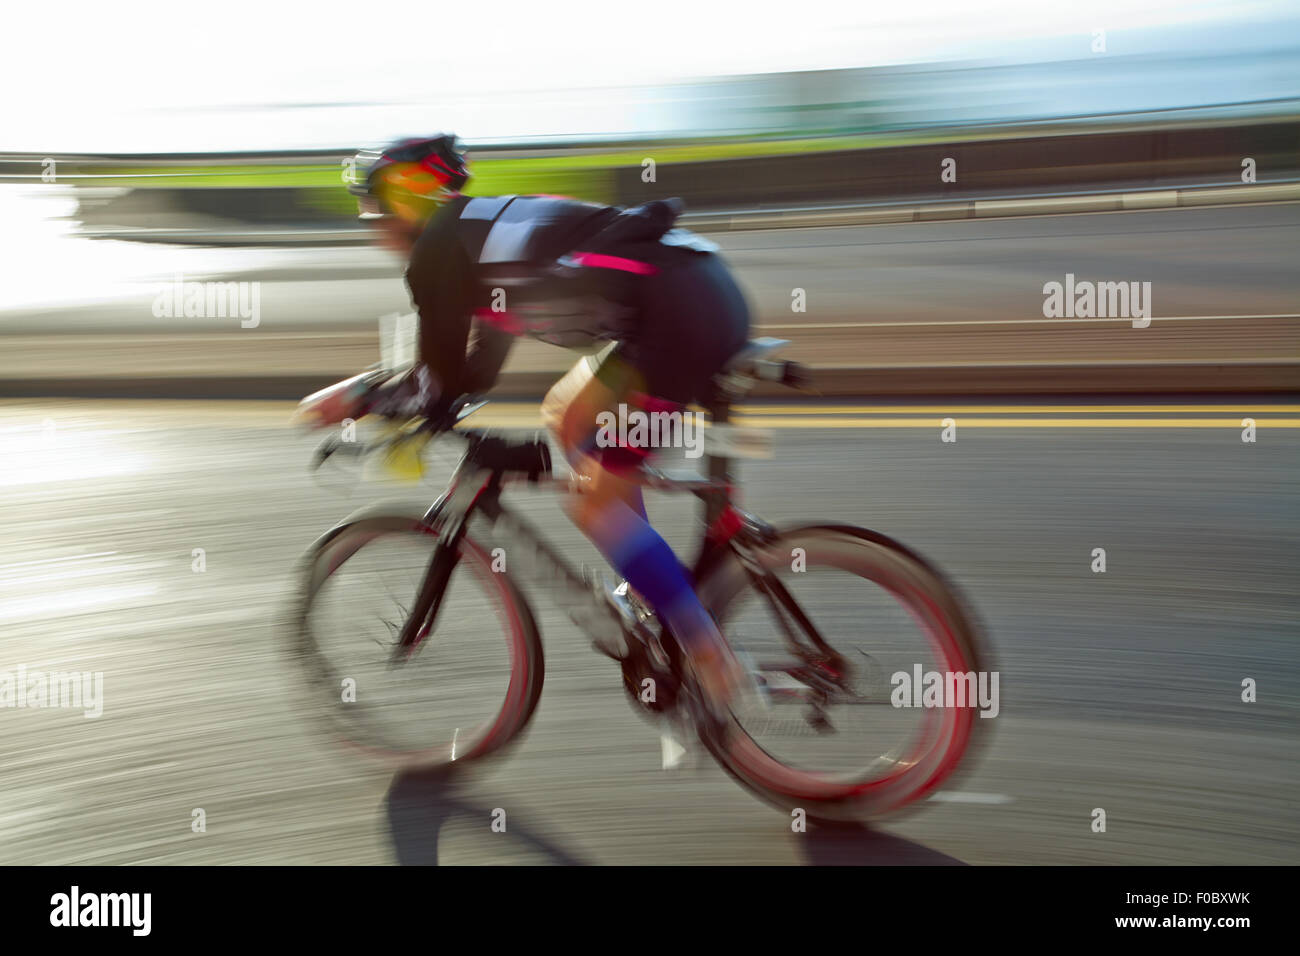 Athlet riding bicycle at sunny day on coastal road, blurred motion - Stock Image